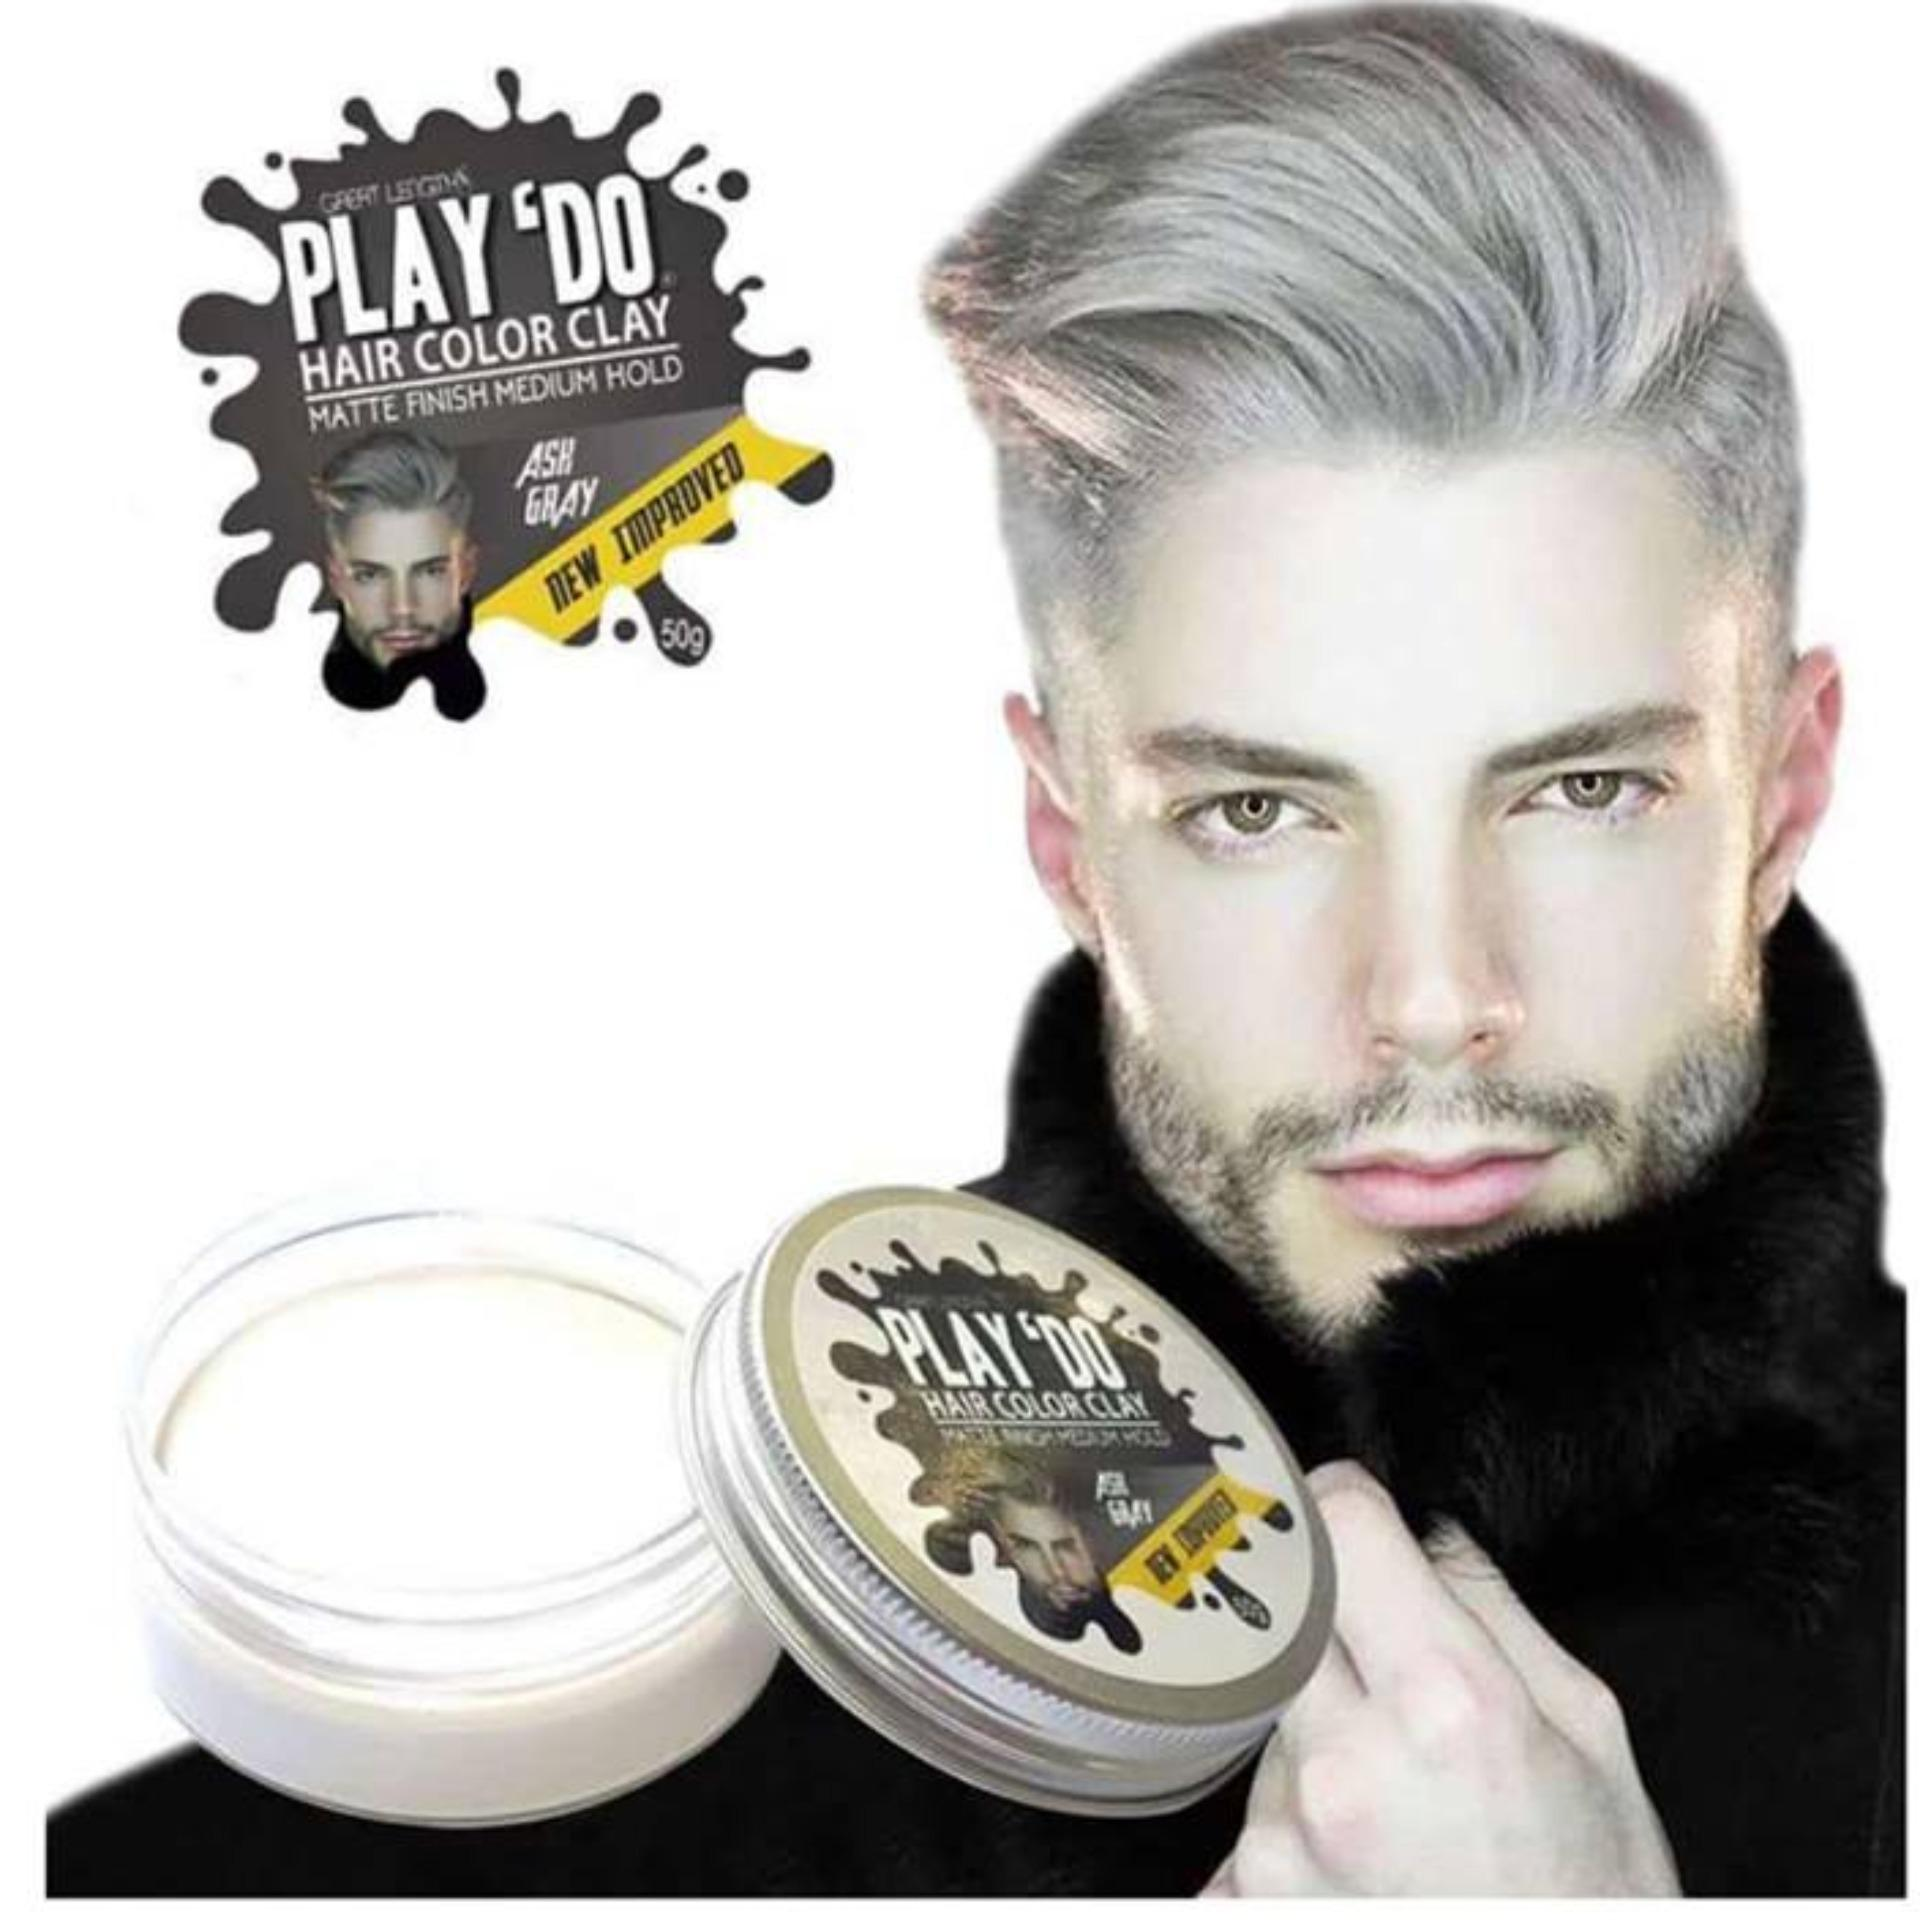 Easy Hair Styles Brands Styling On Sale Prices Set Pomade Gatsby Urban Dry 30 Gr Gel Play Do Color Clay Ash Gray New Improved